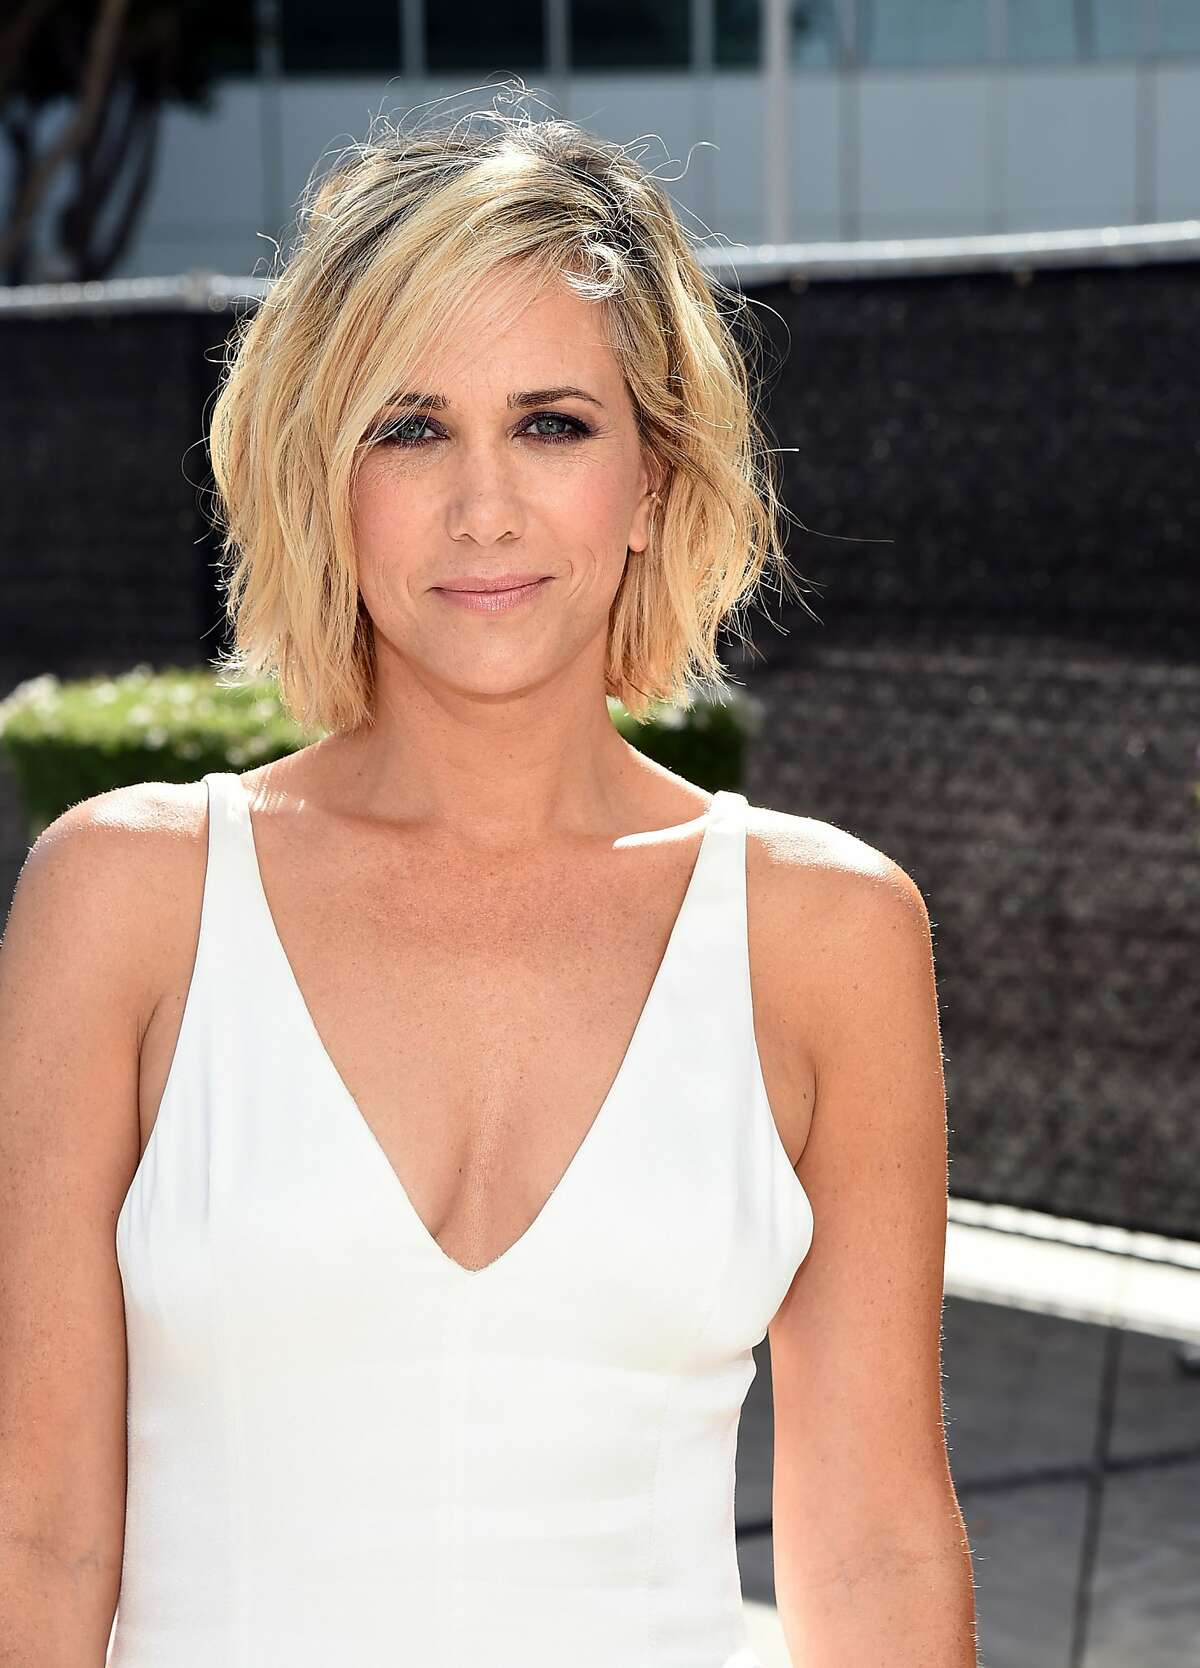 Actress Kristen Wiig attends the 66th Annual Primetime Emmy Awards held at Nokia Theatre L.A. Live on August 25, 2014 in Los Angeles, California. (Photo by Michael Buckner/Getty Images)